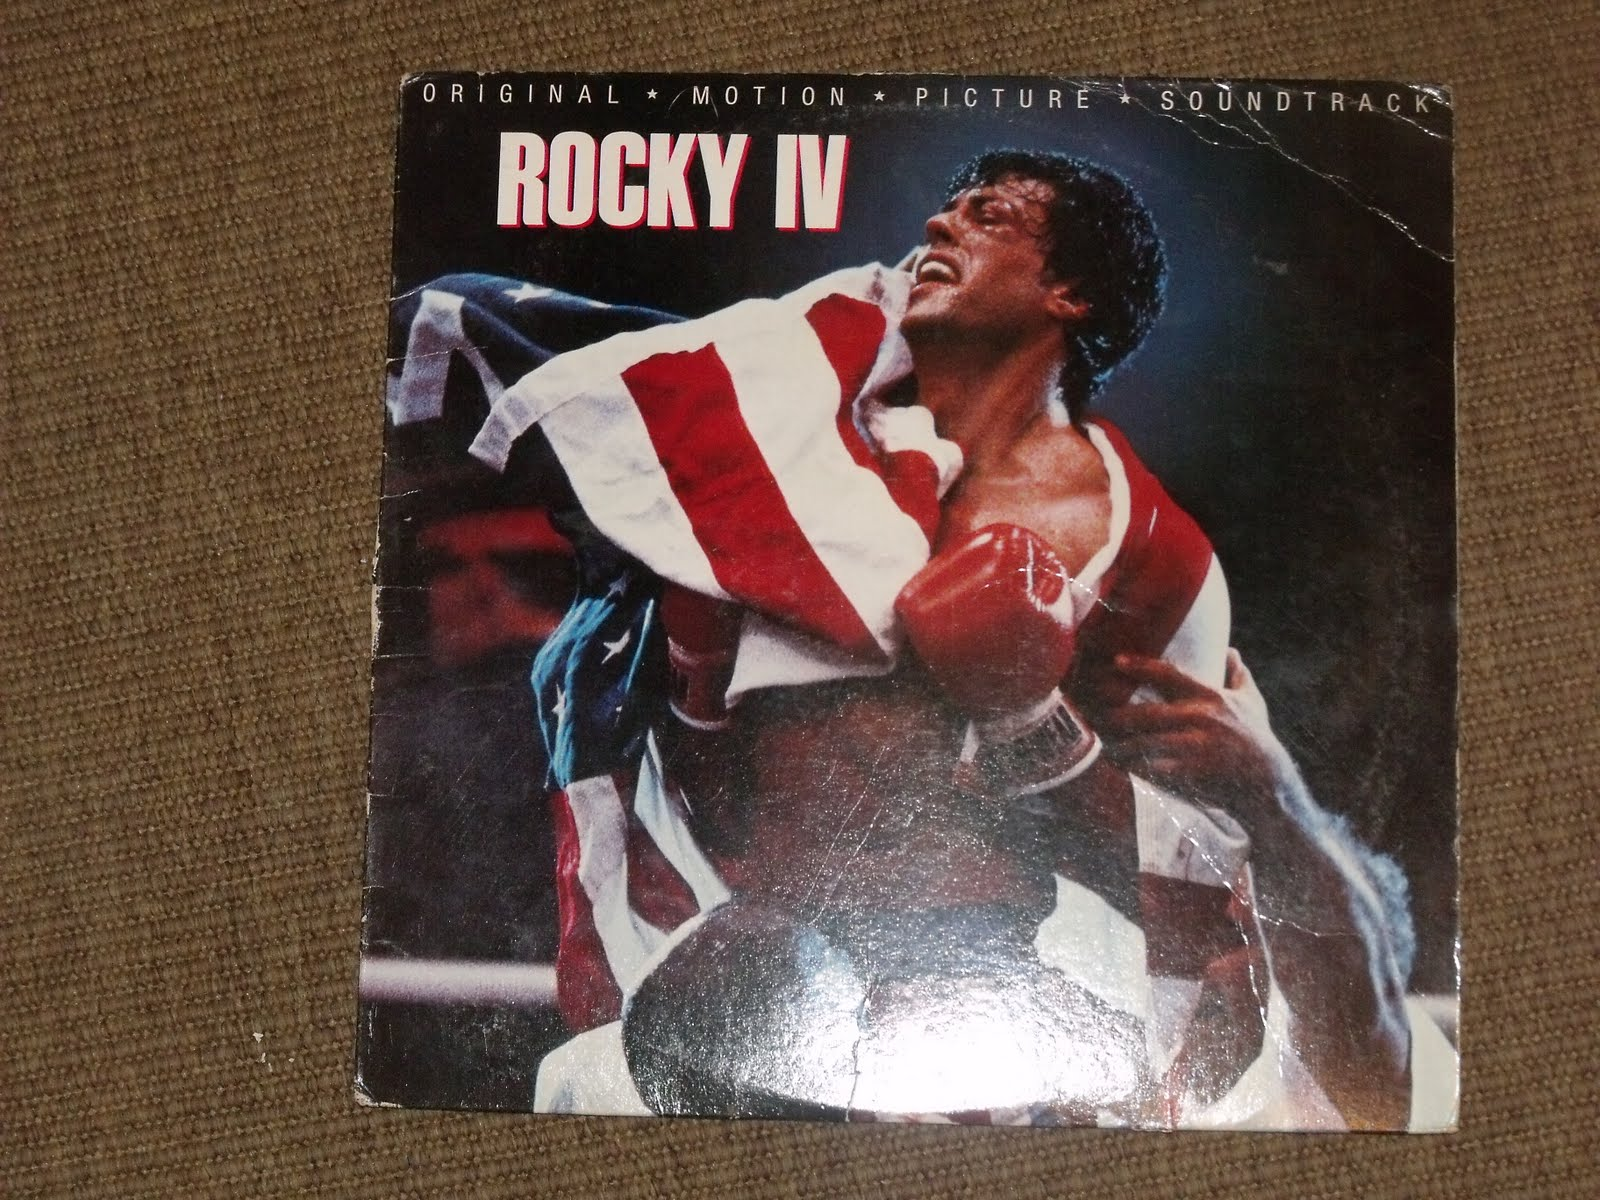 Vince Dicola / Robert Tepper - War Fanfare From Rocky / No Easy Way Out